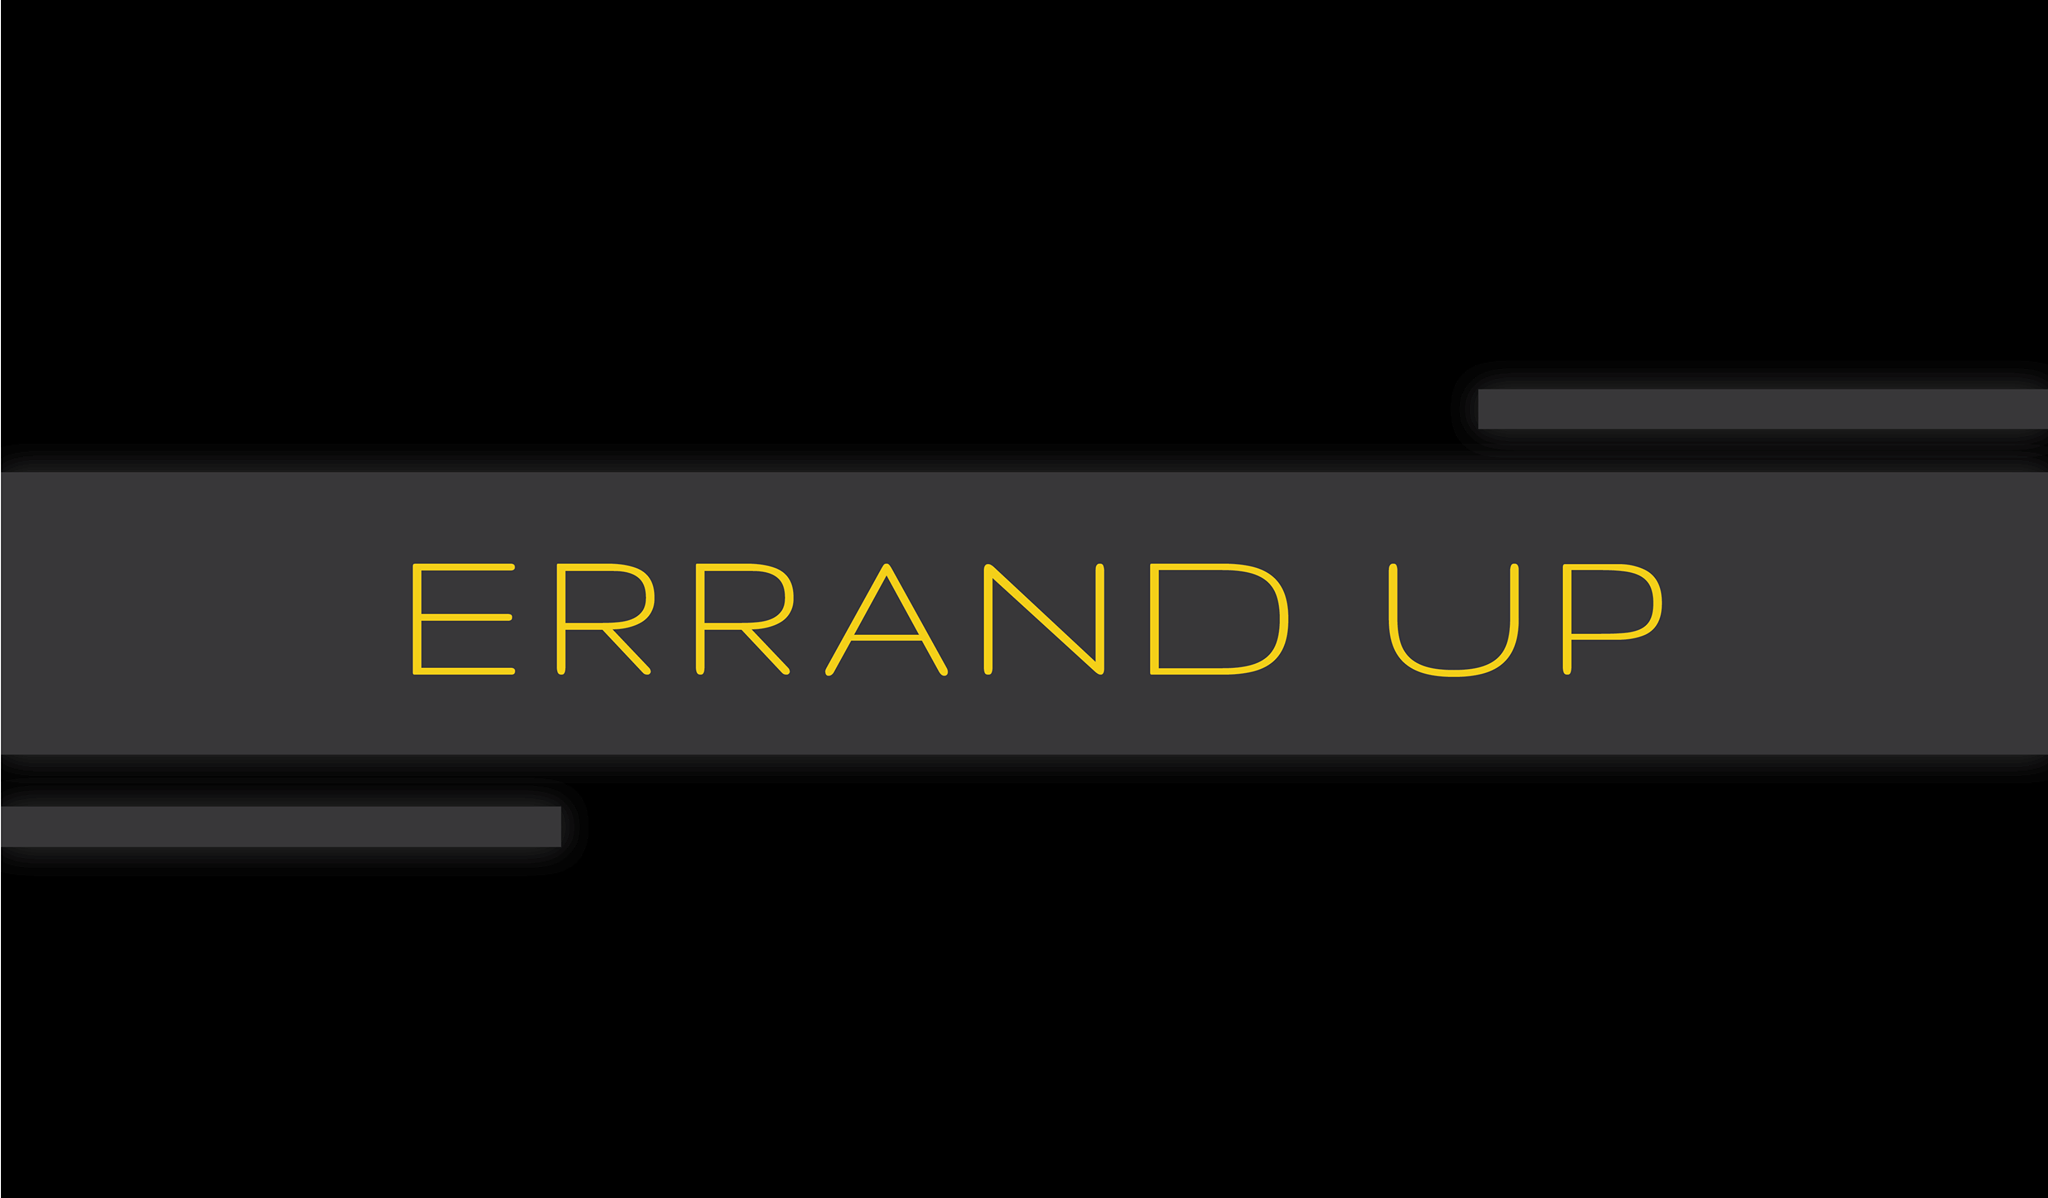 - Errand Up is an on-demand delivery and family shopping service for Batavia, Geneva and St. Charles. Users can request errands remotely from their phone, computer, or on-the-go. If your daily grind has you in a bind, turn to Errand Up!